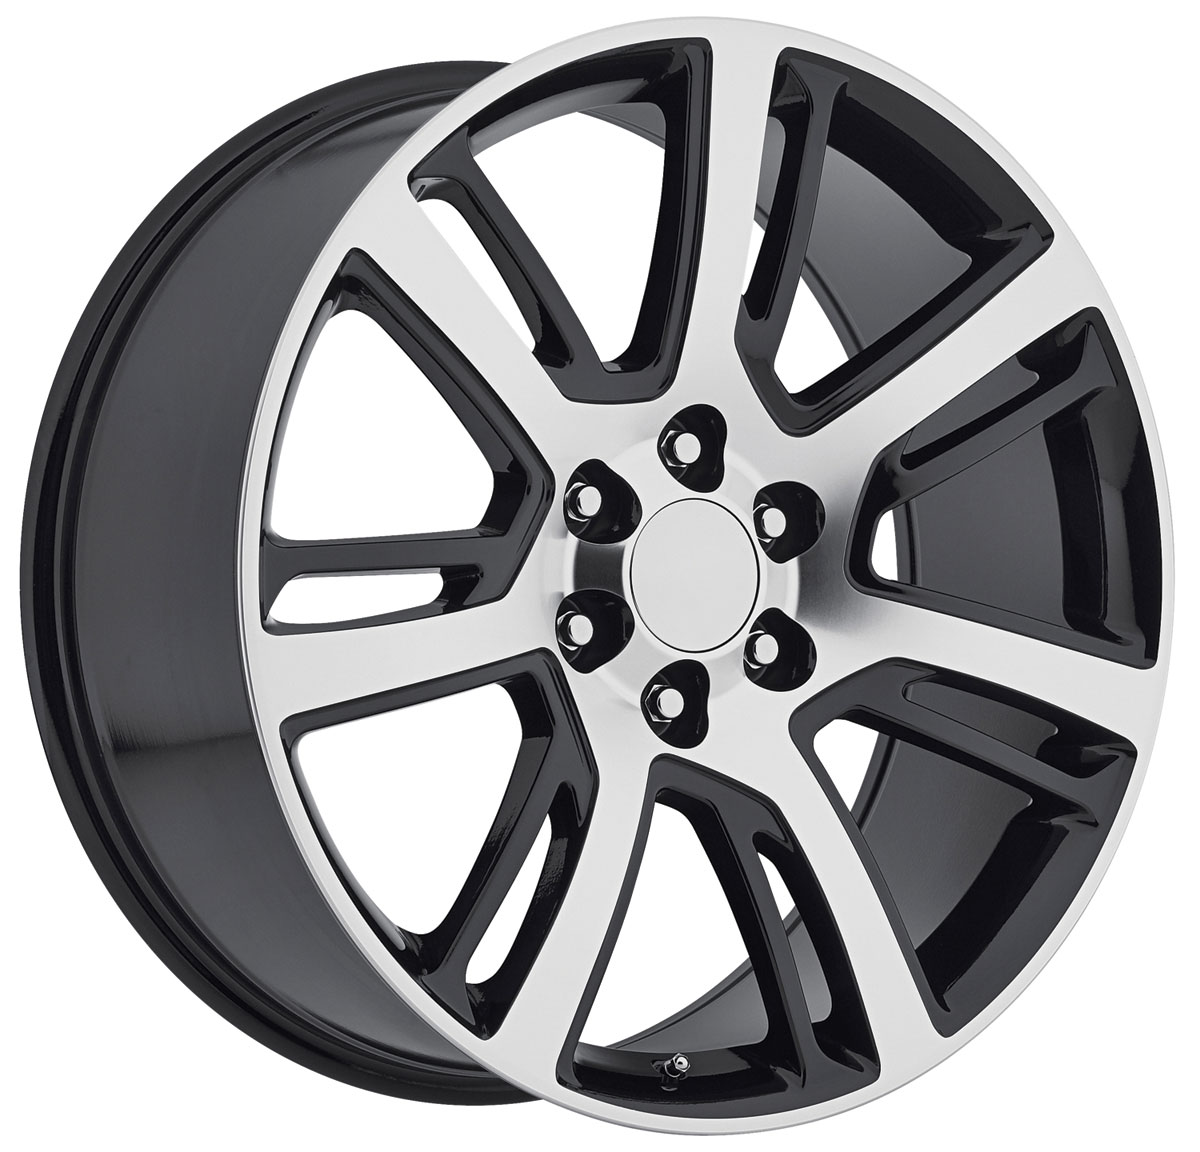 Wheel, Factory Reproduction, Escalade, SRS 48, 24X10 6X5.5 +31 HB 78.1